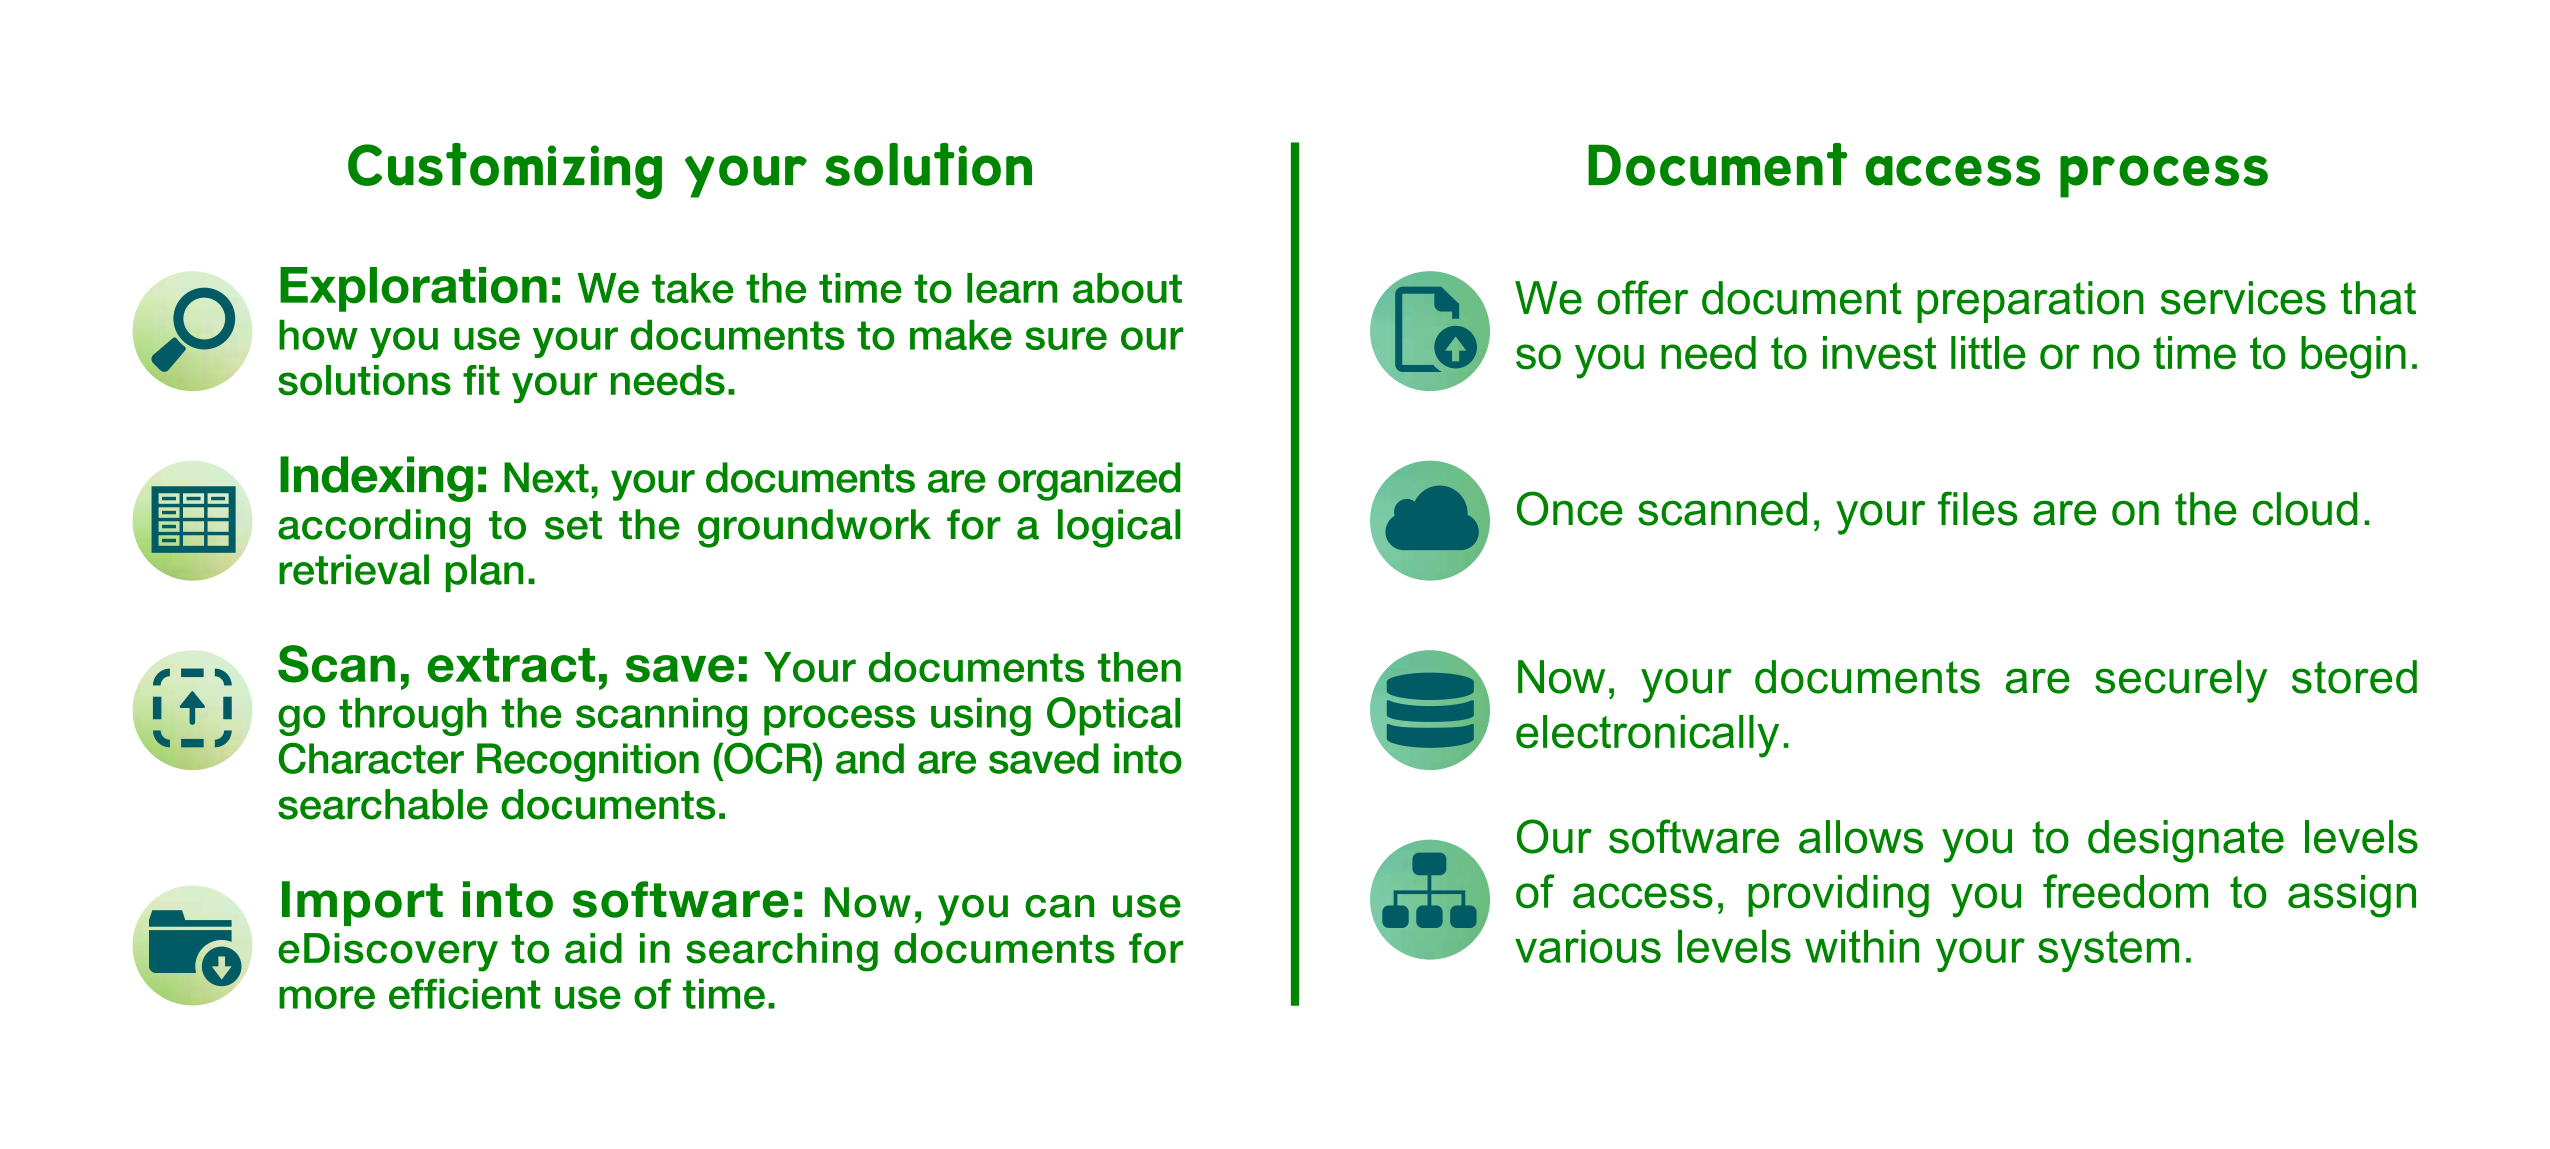 Customized document imaging solution and document access process